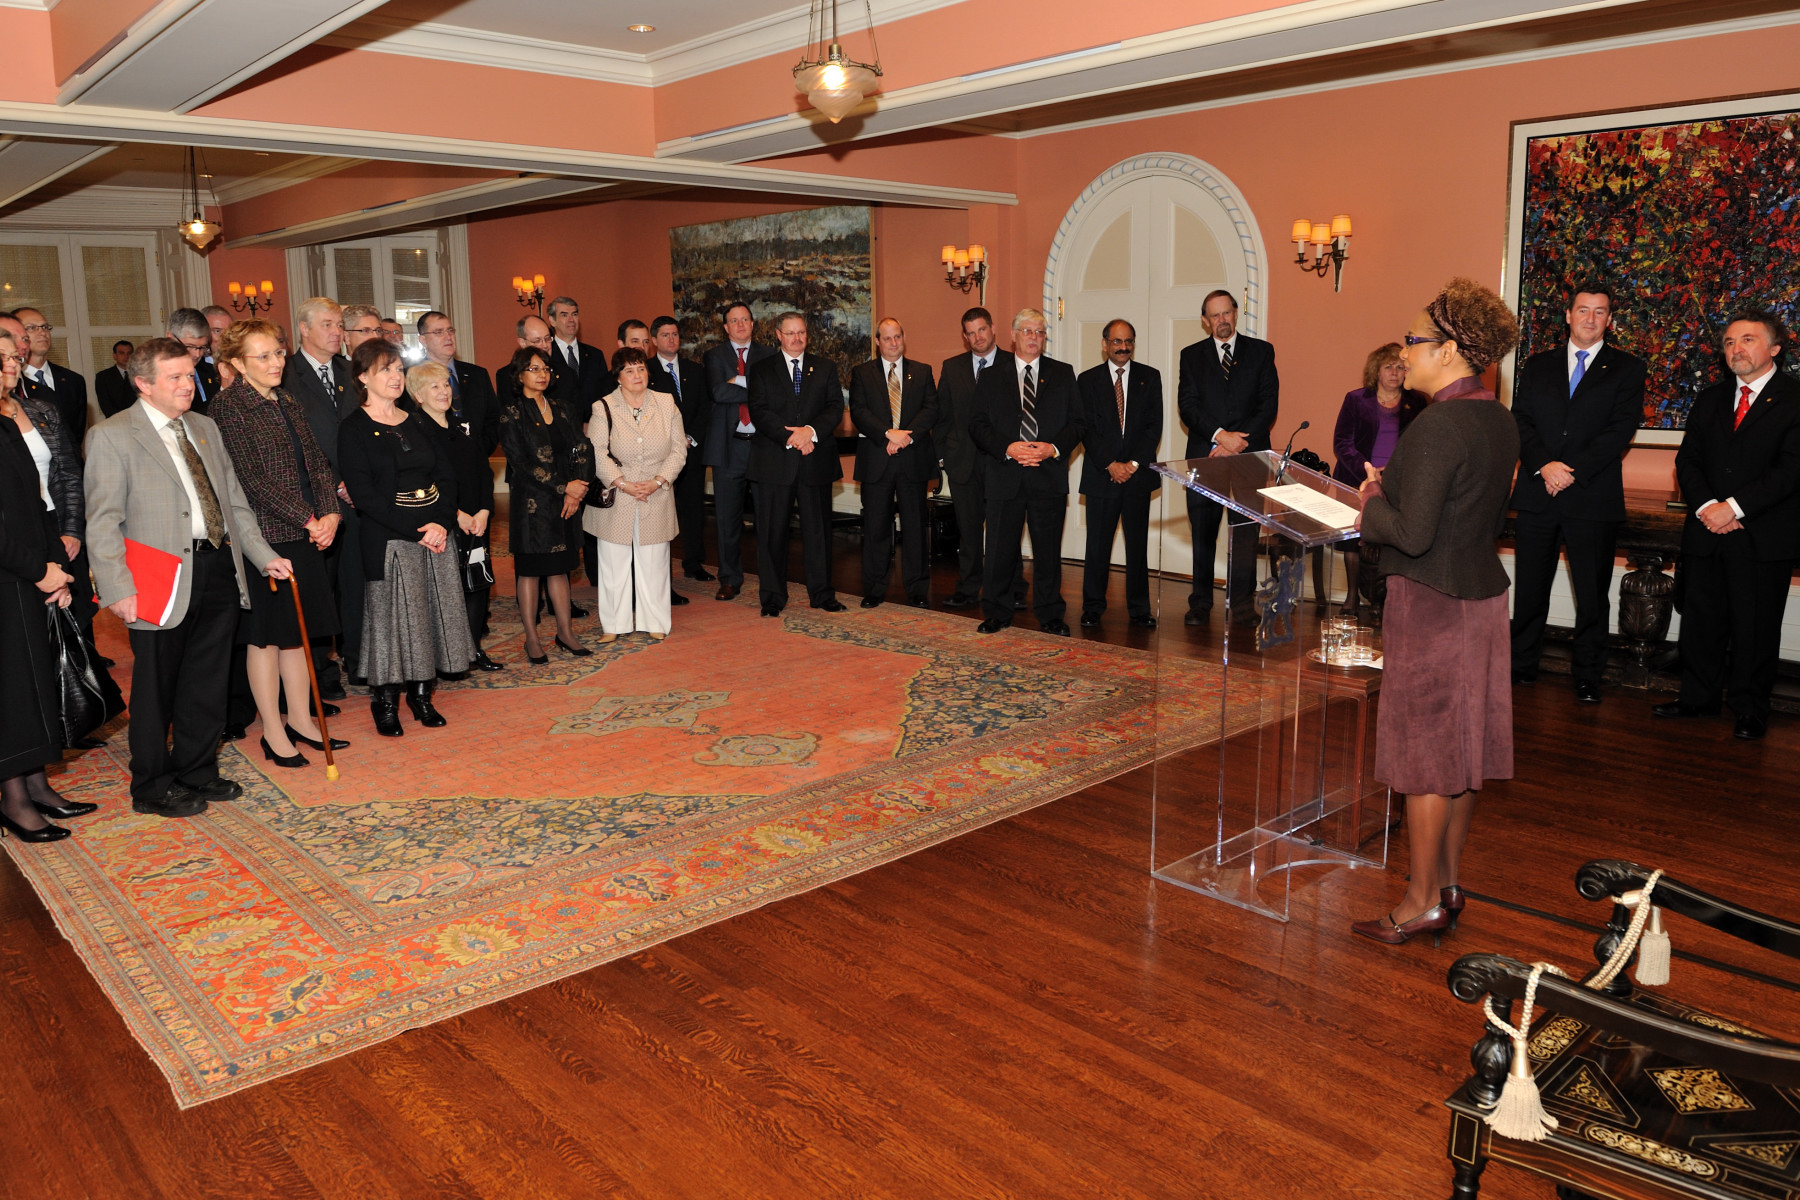 The ceremony took place at Rideau Hall in the presence of members of the Institute's board of governors from across Canada and other invited guests.